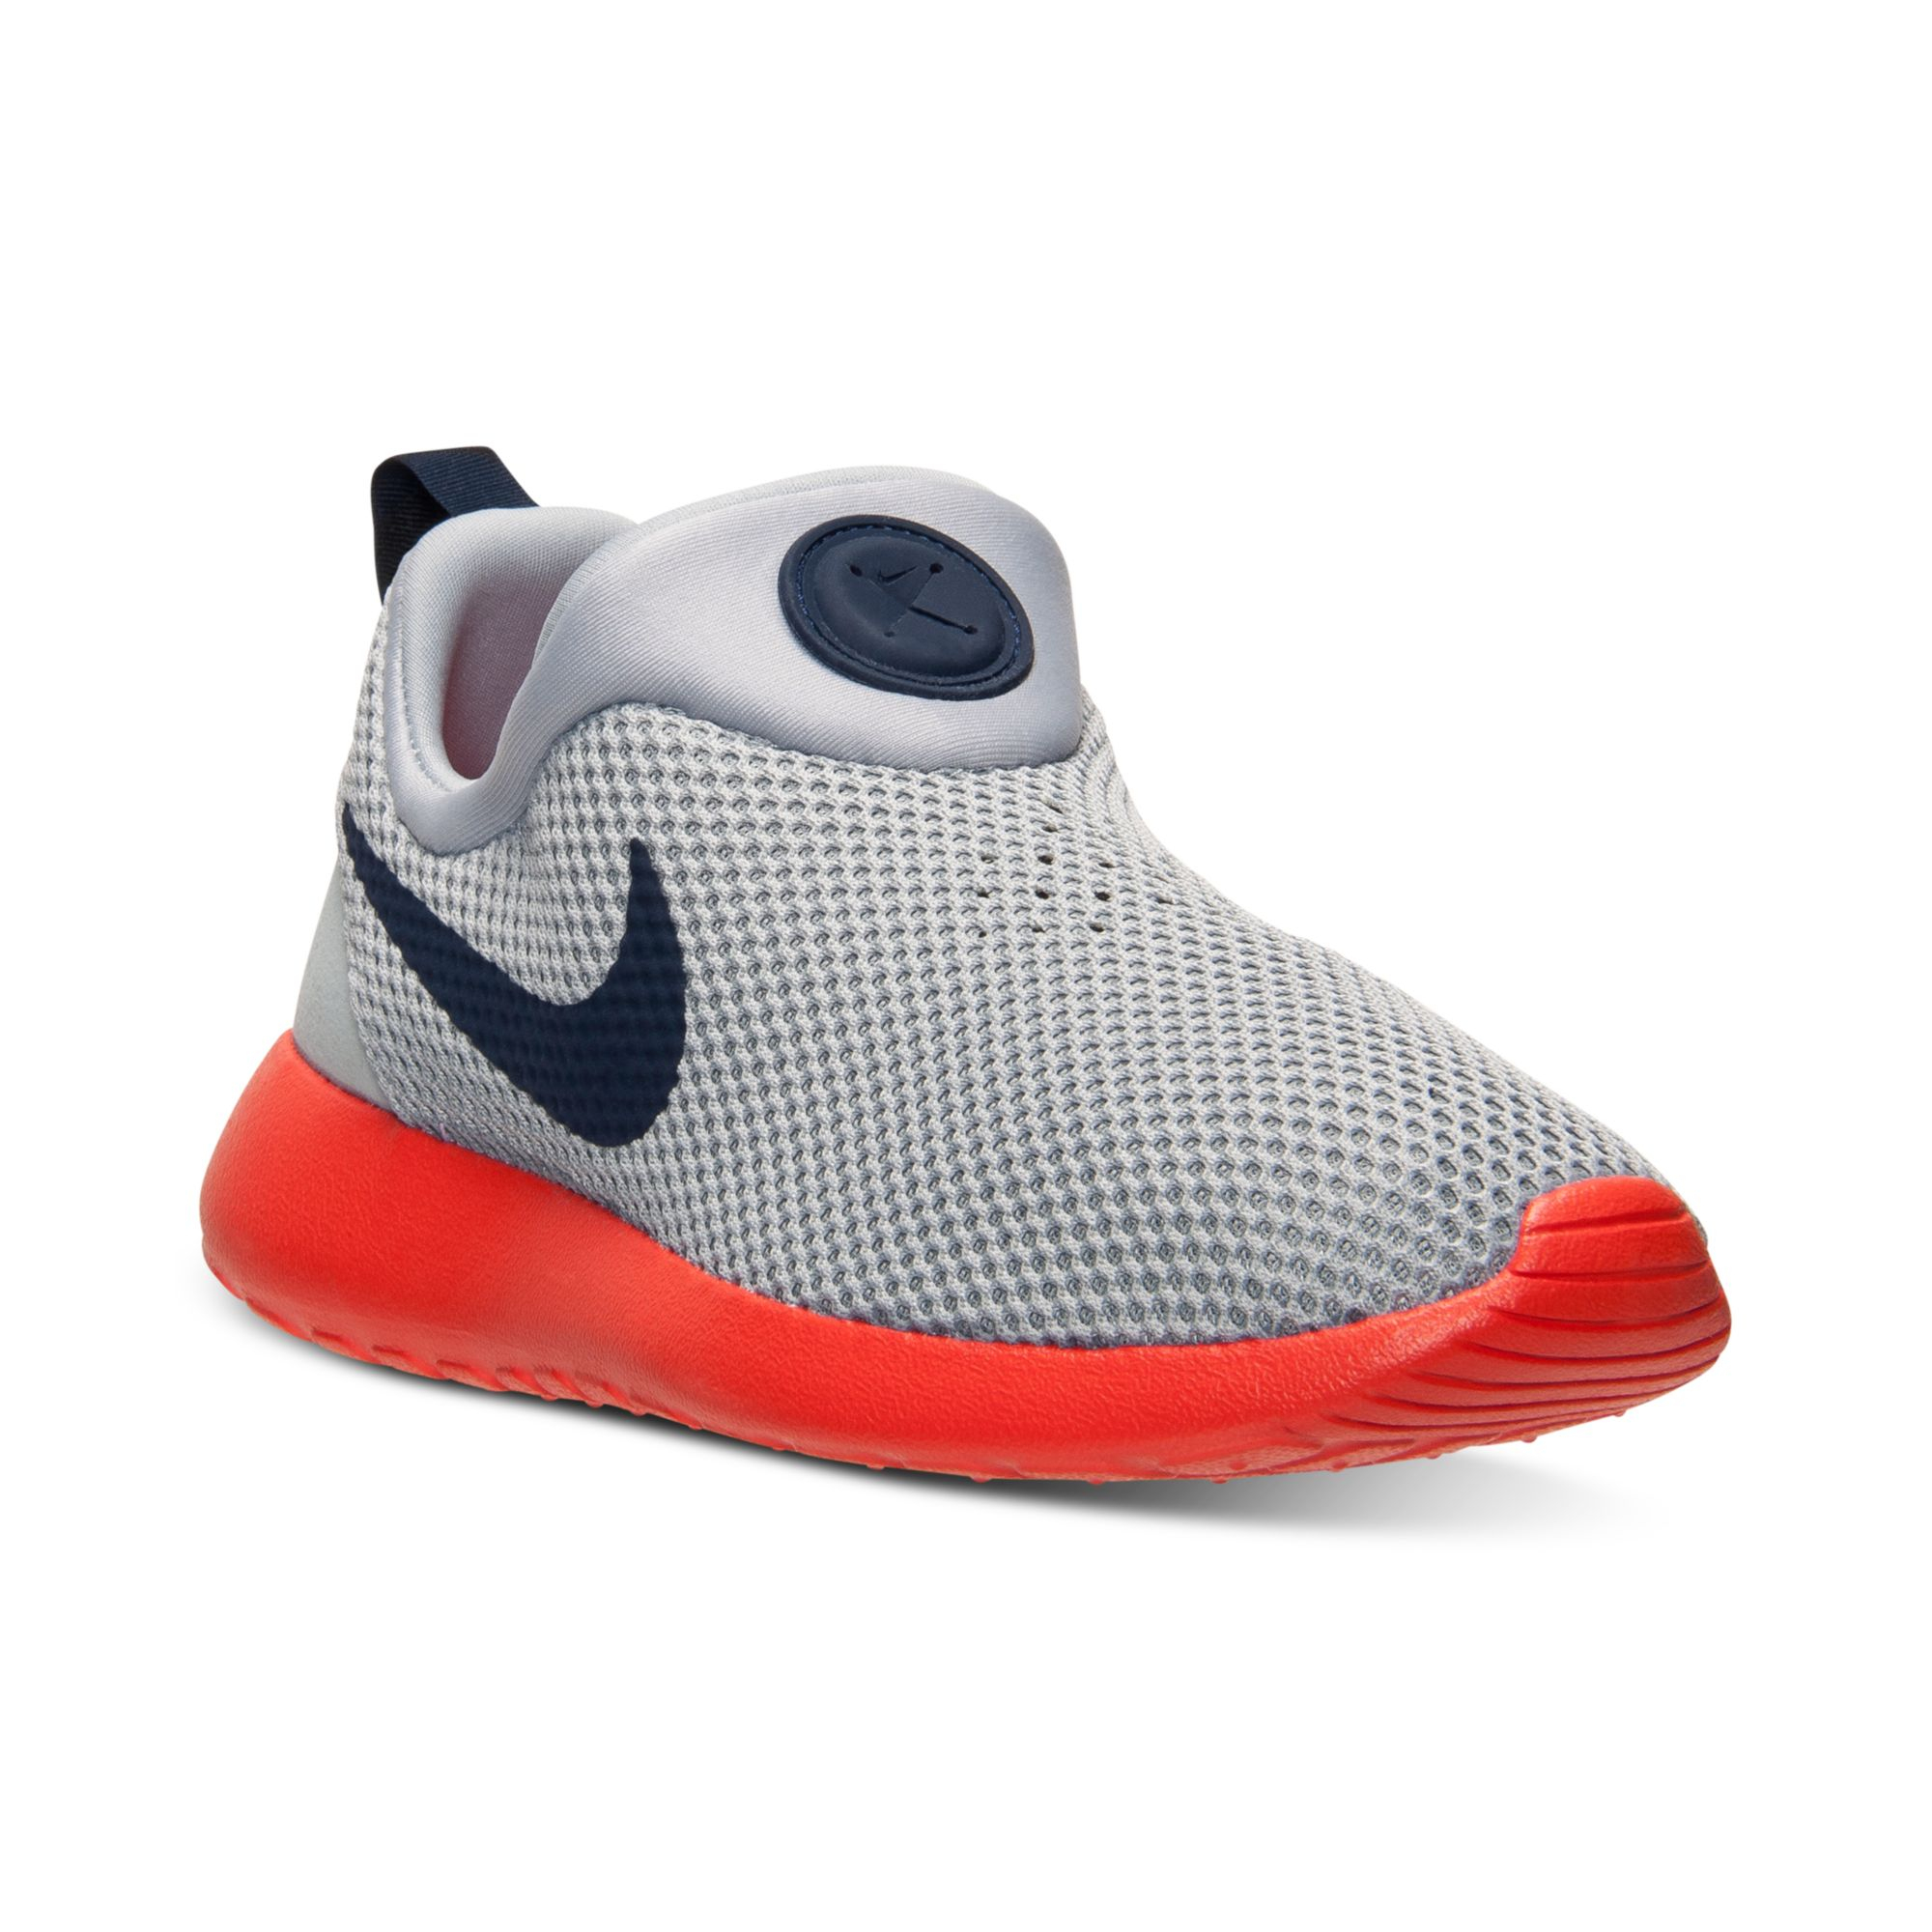 cb71c48280f7 Lyst - Nike Mens Roshe Run Slip On Casual Sneakers From Finish Line ...